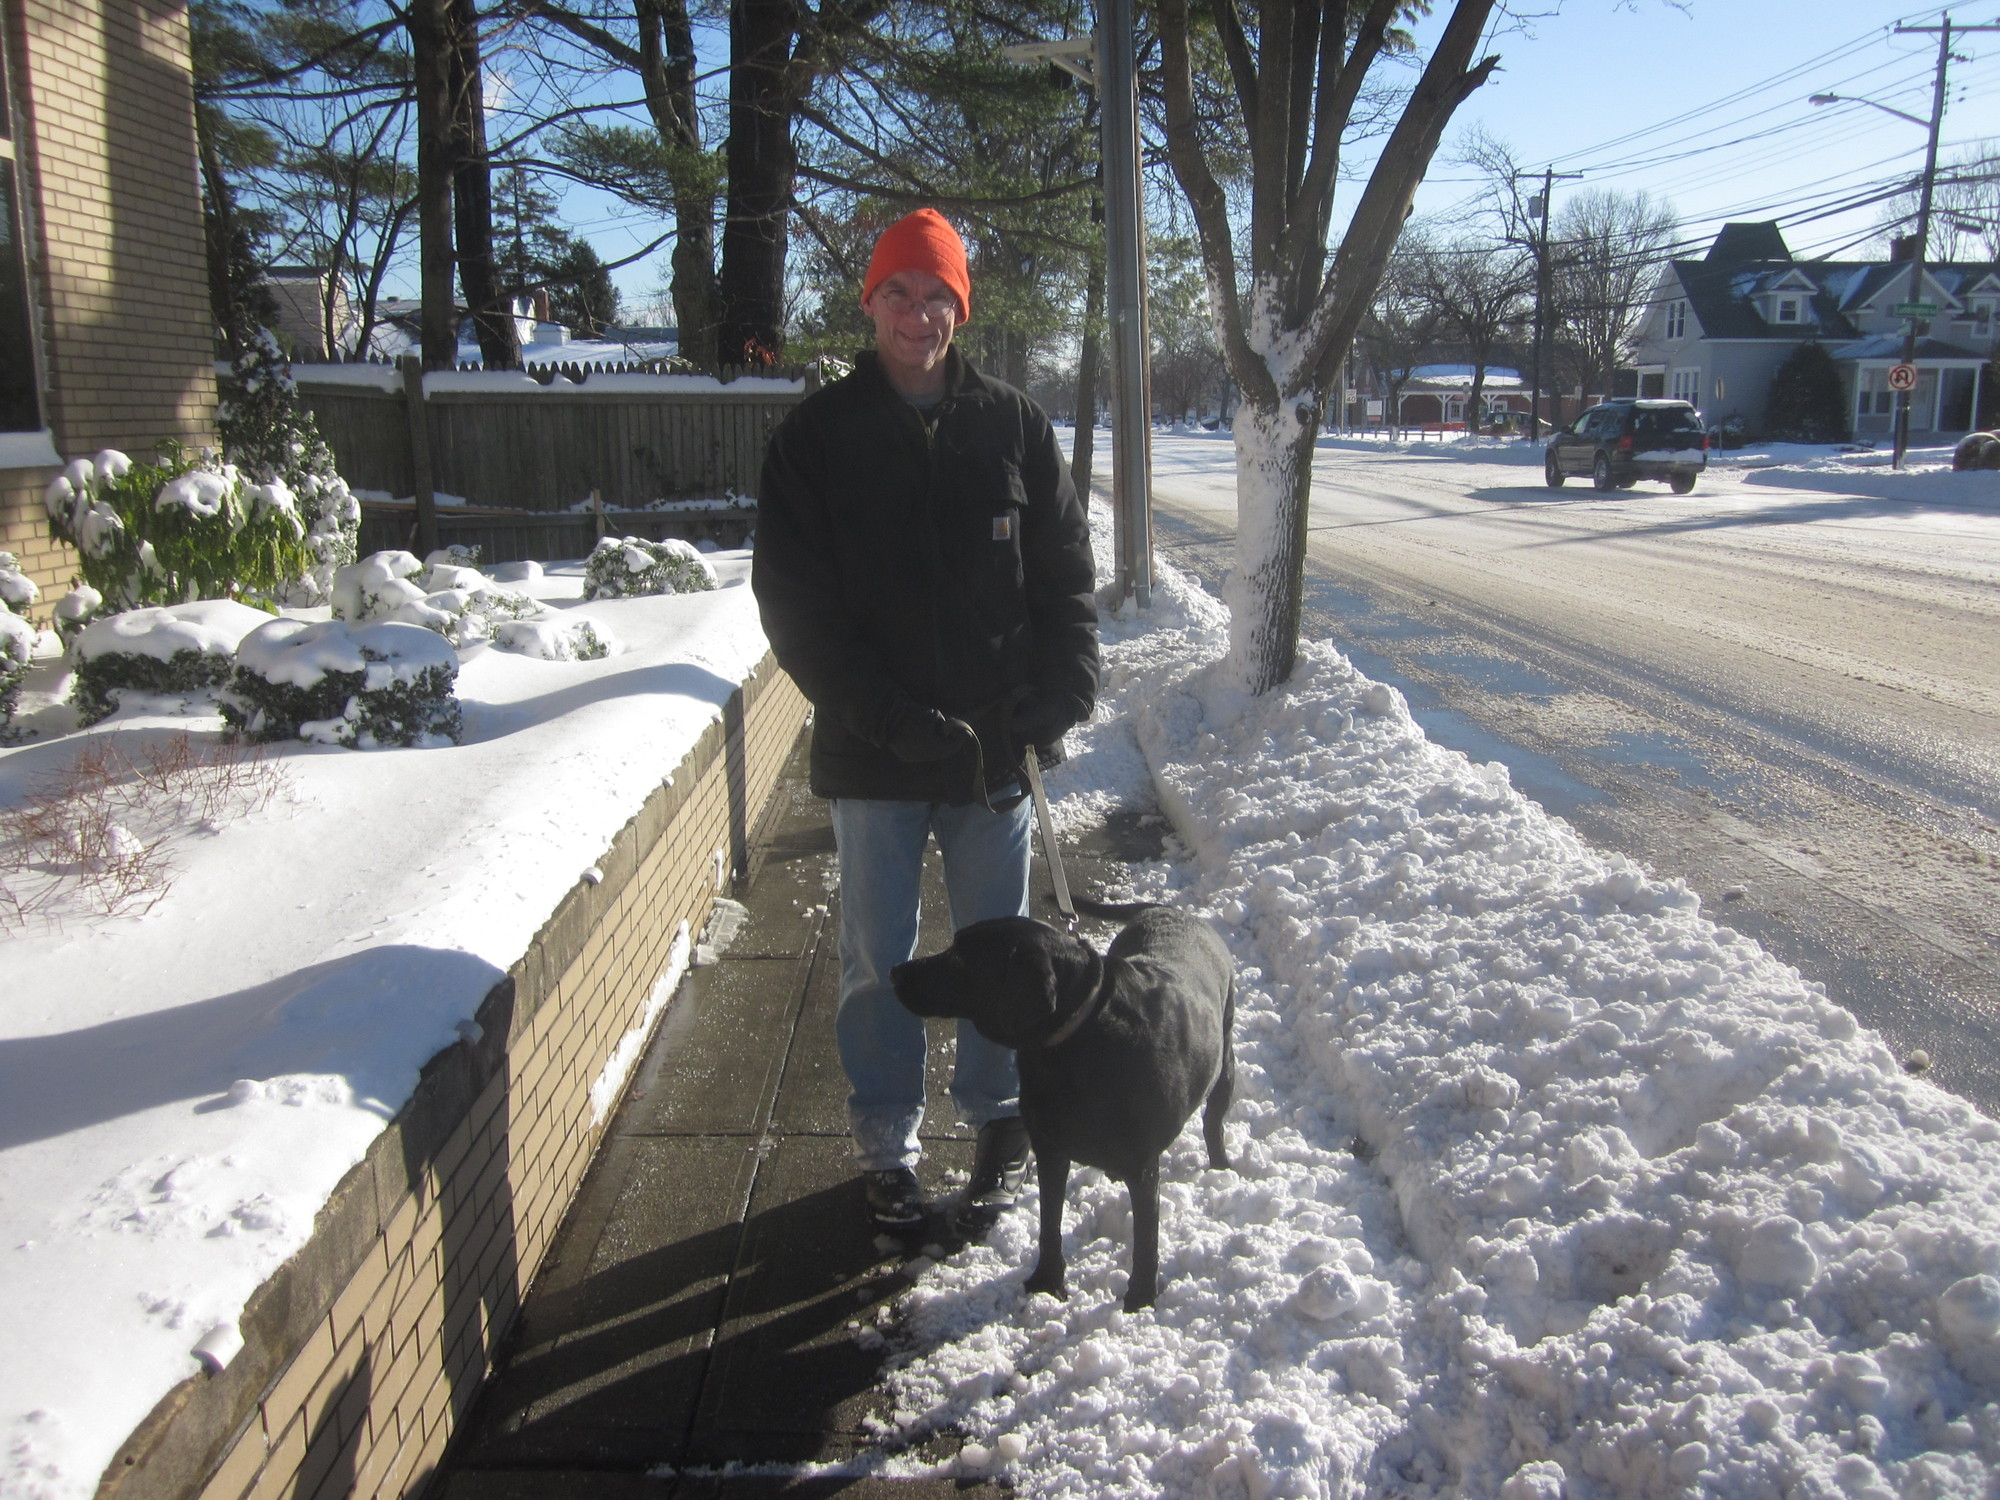 Surrey Drive resident Steven Smith walked his dog Lola in the snow.